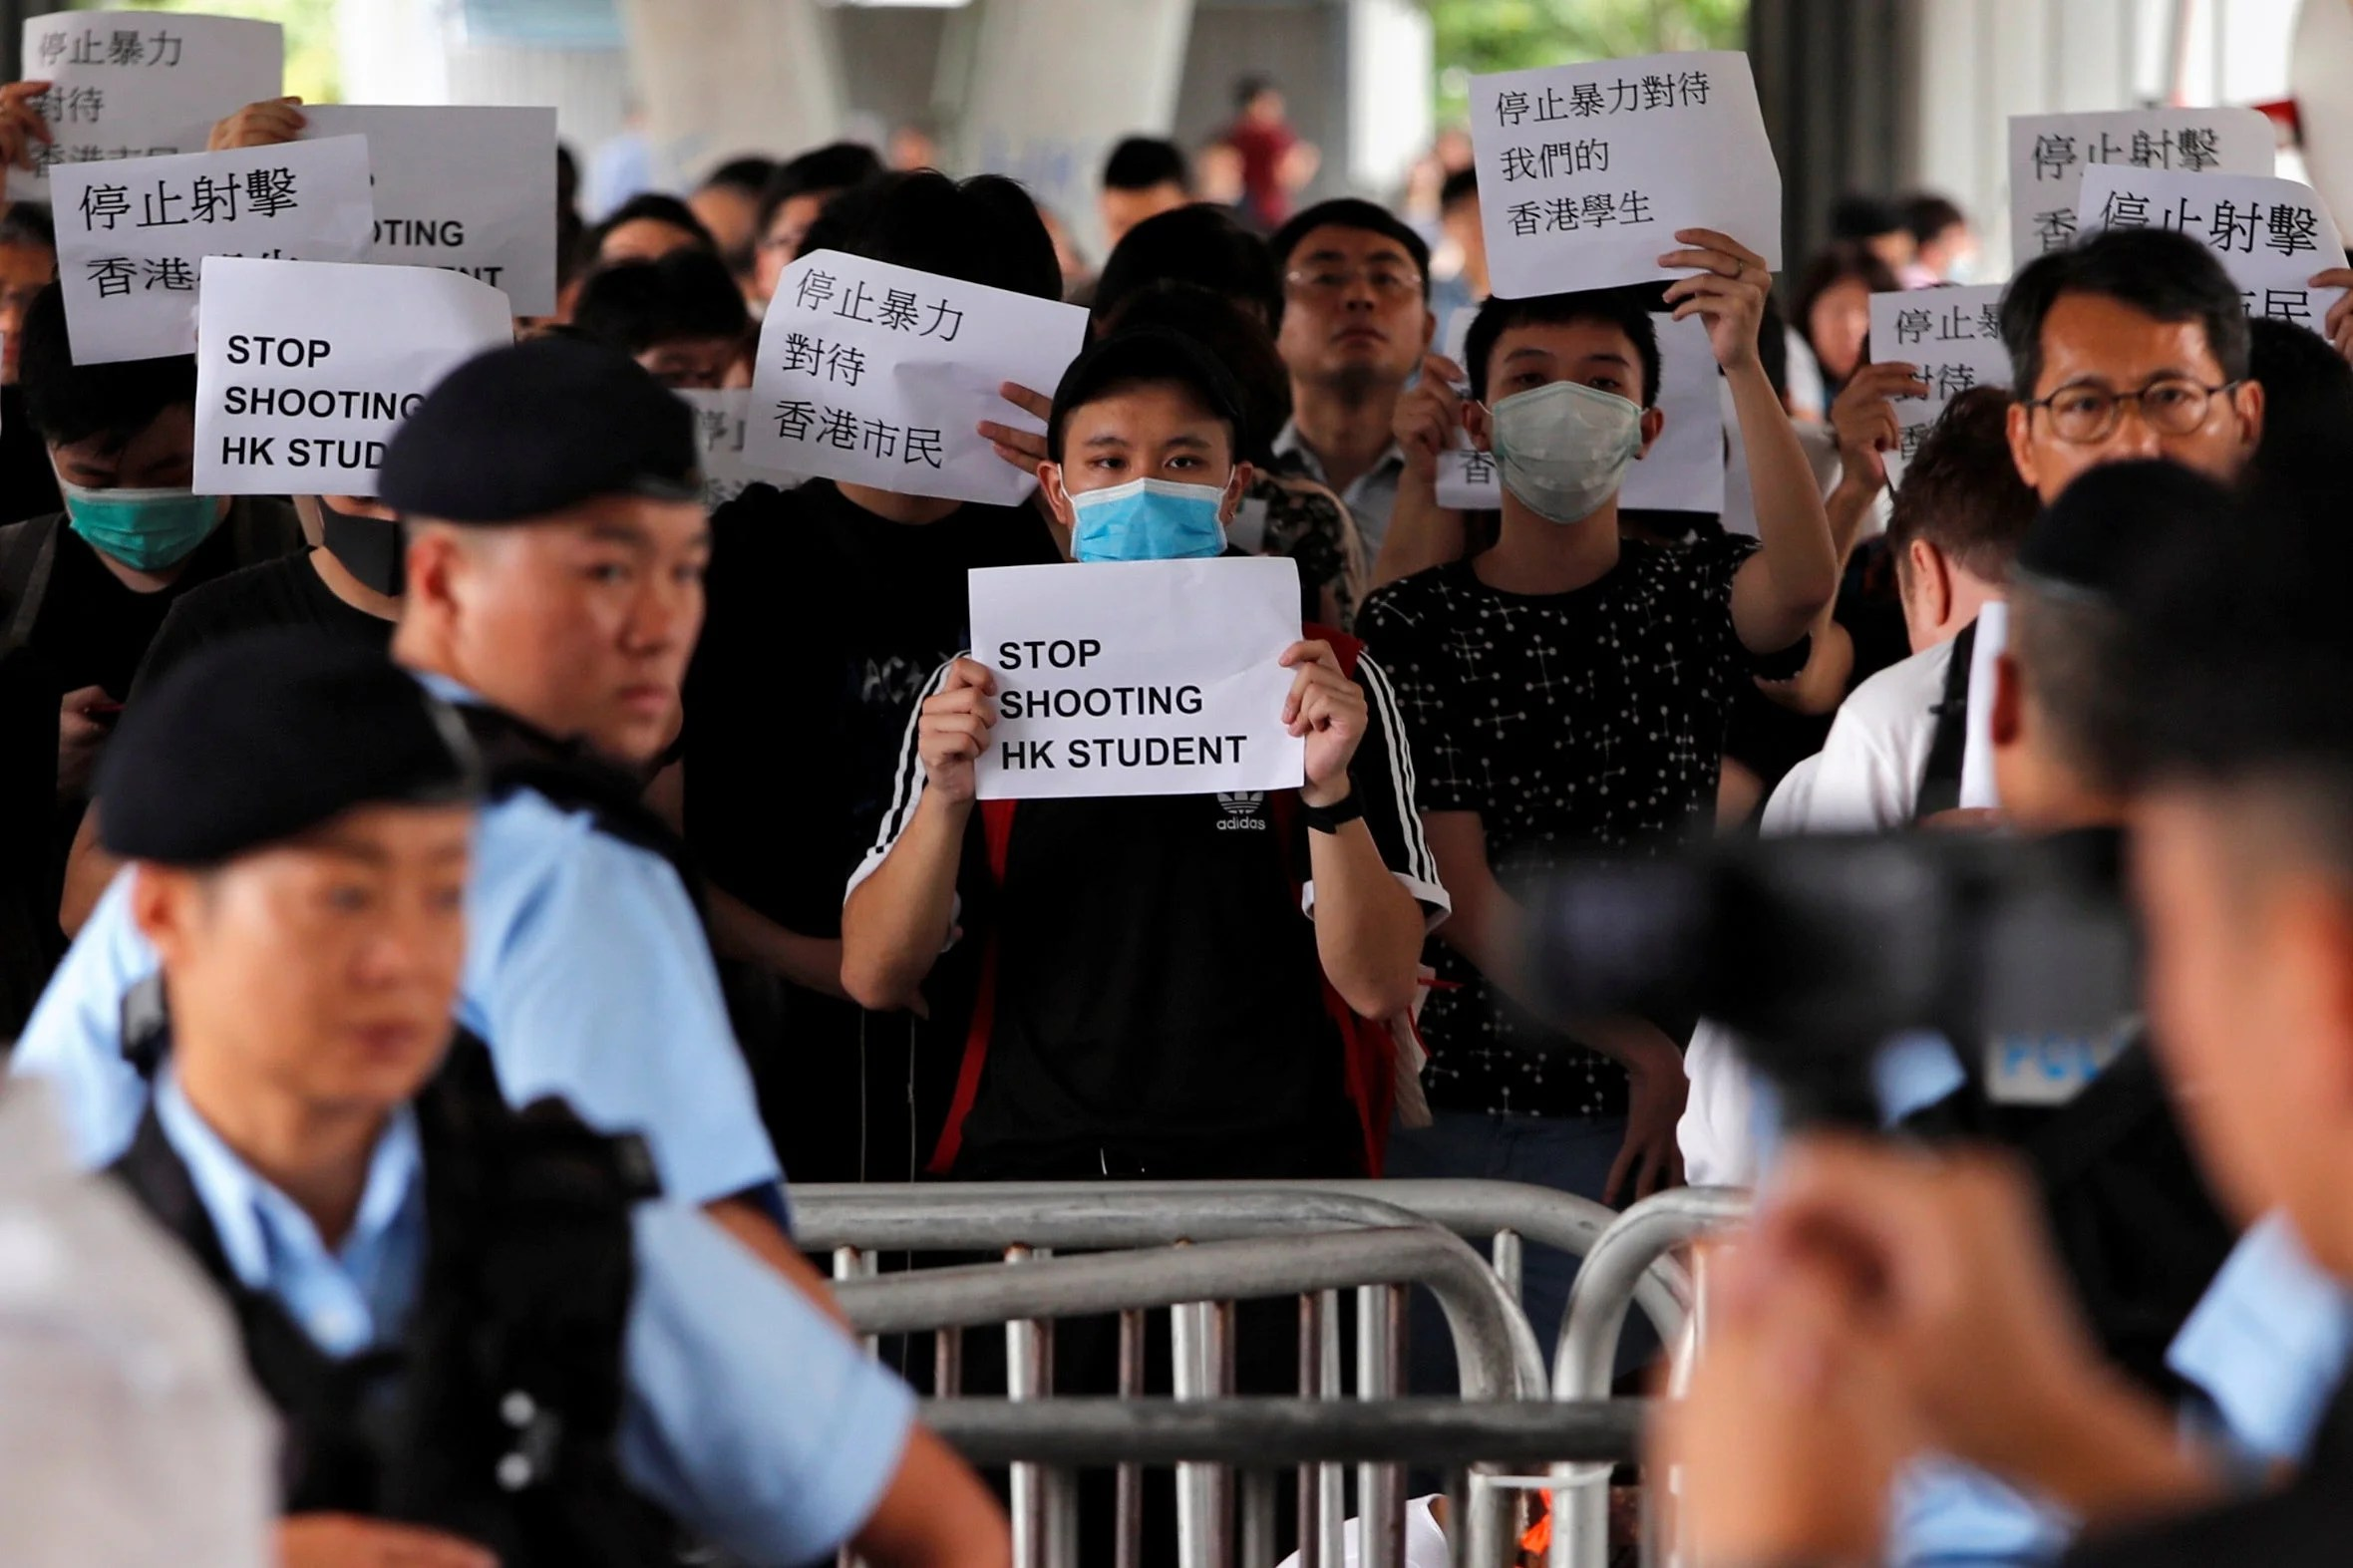 hongkongriotsthurs1306b Hong Kong riots: Further clashes between police and protesters as hundreds remain on the street in protest over extradition law